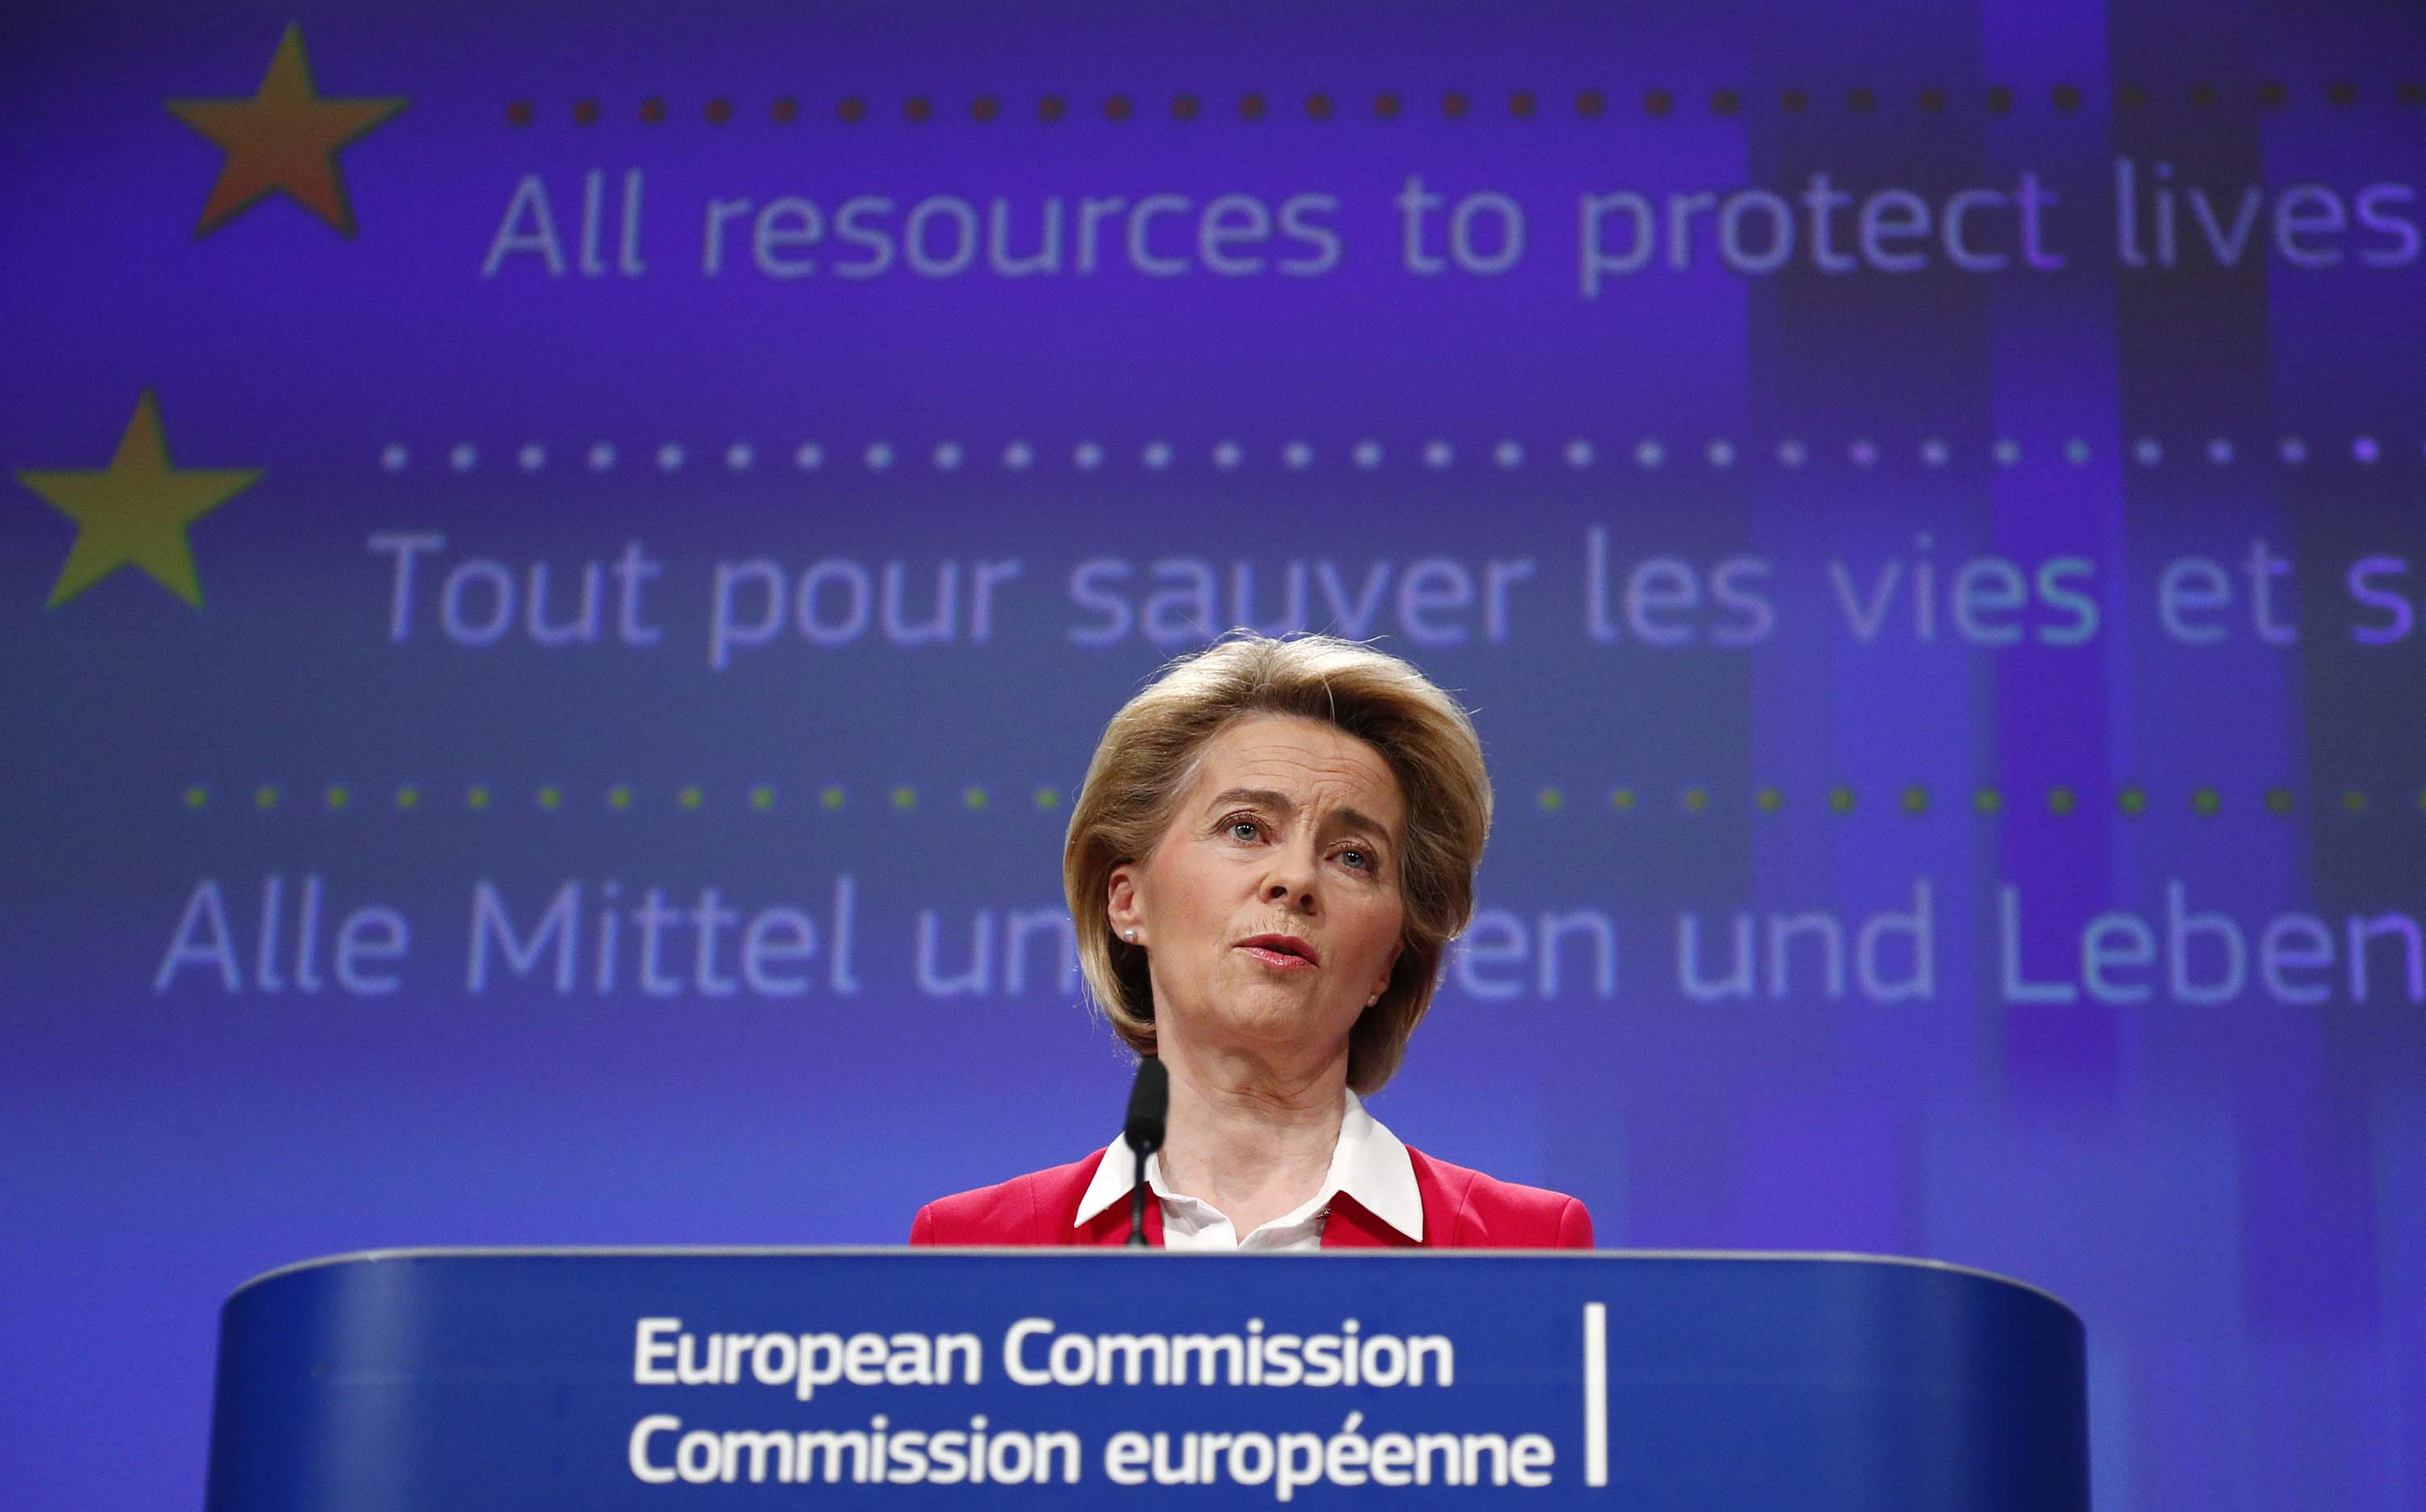 European Commission President Ursula von der Leyen speaks during a media conference at EU headquarters in Brussels, Belgium, on April 2.